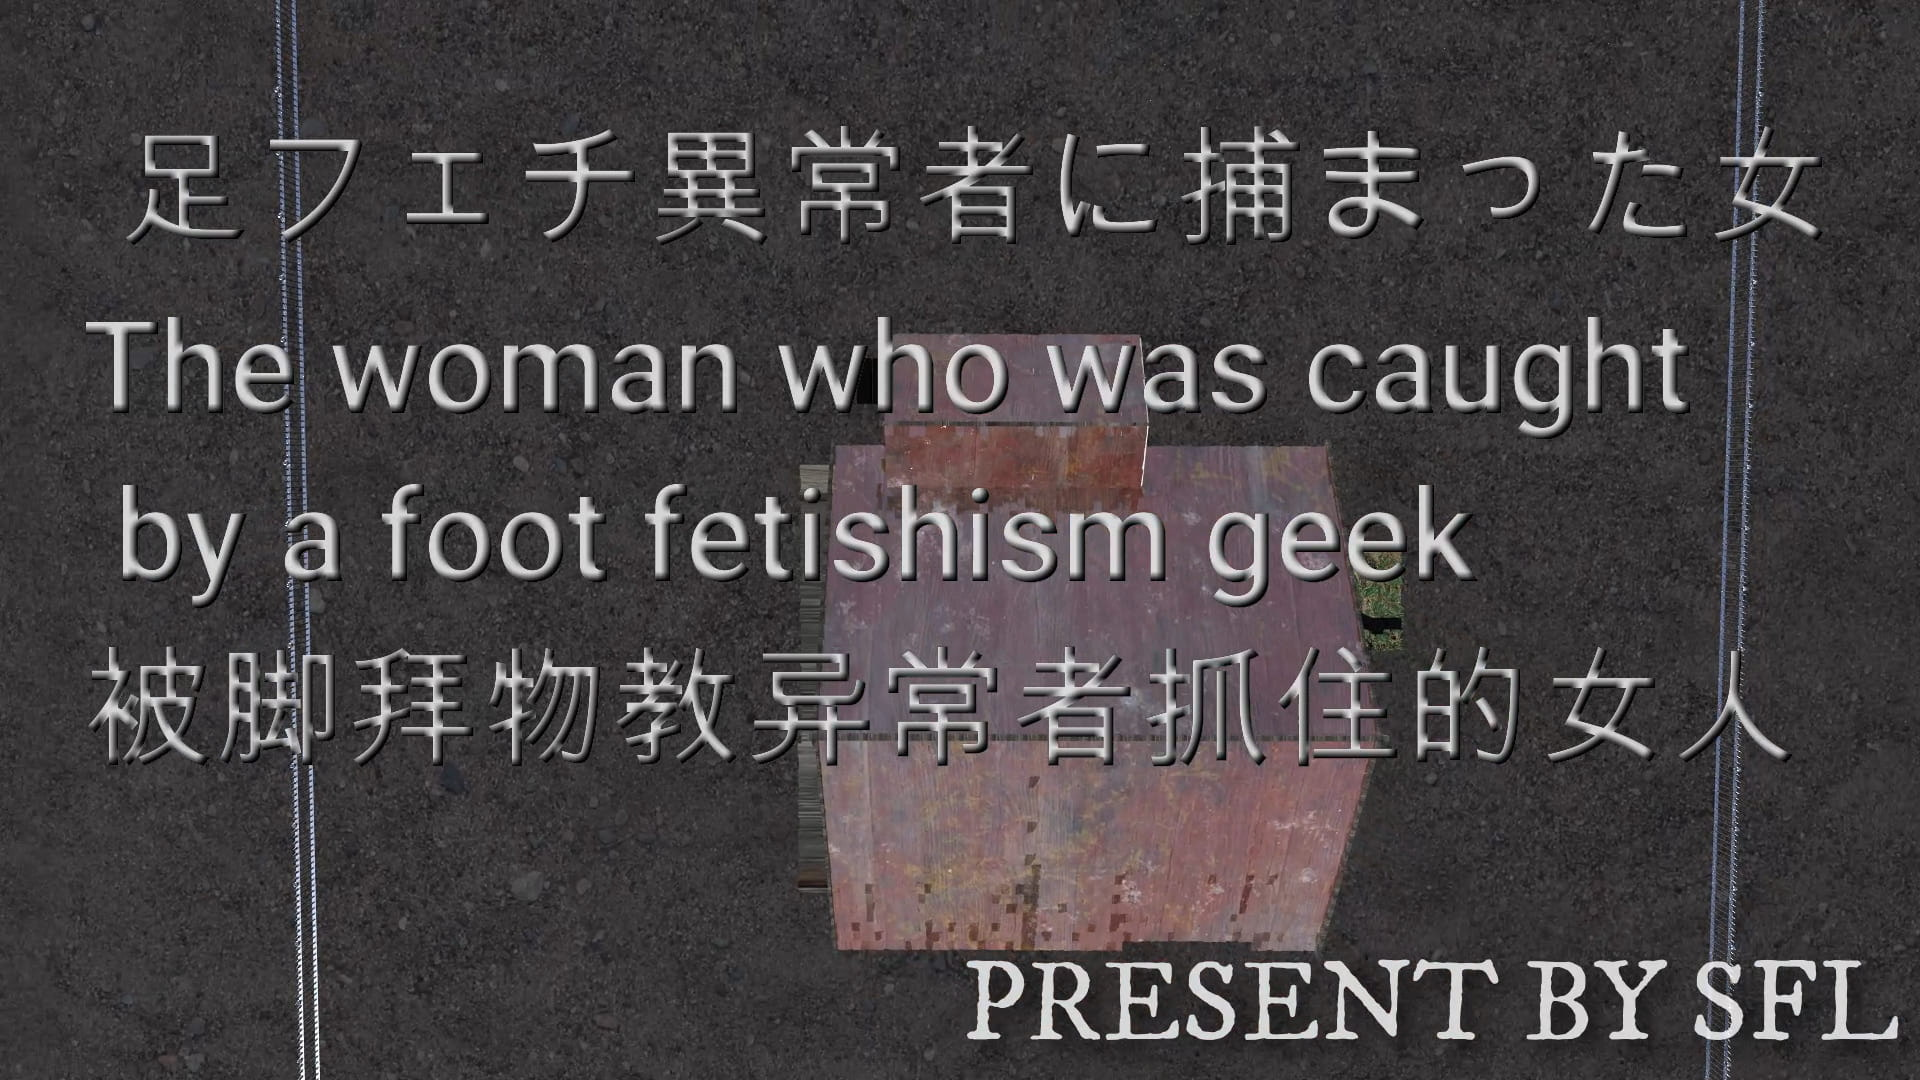 RJ334029 足フェチ異常者に捕まった女 The woman who was caught by a foot fetishism geek [20210704]